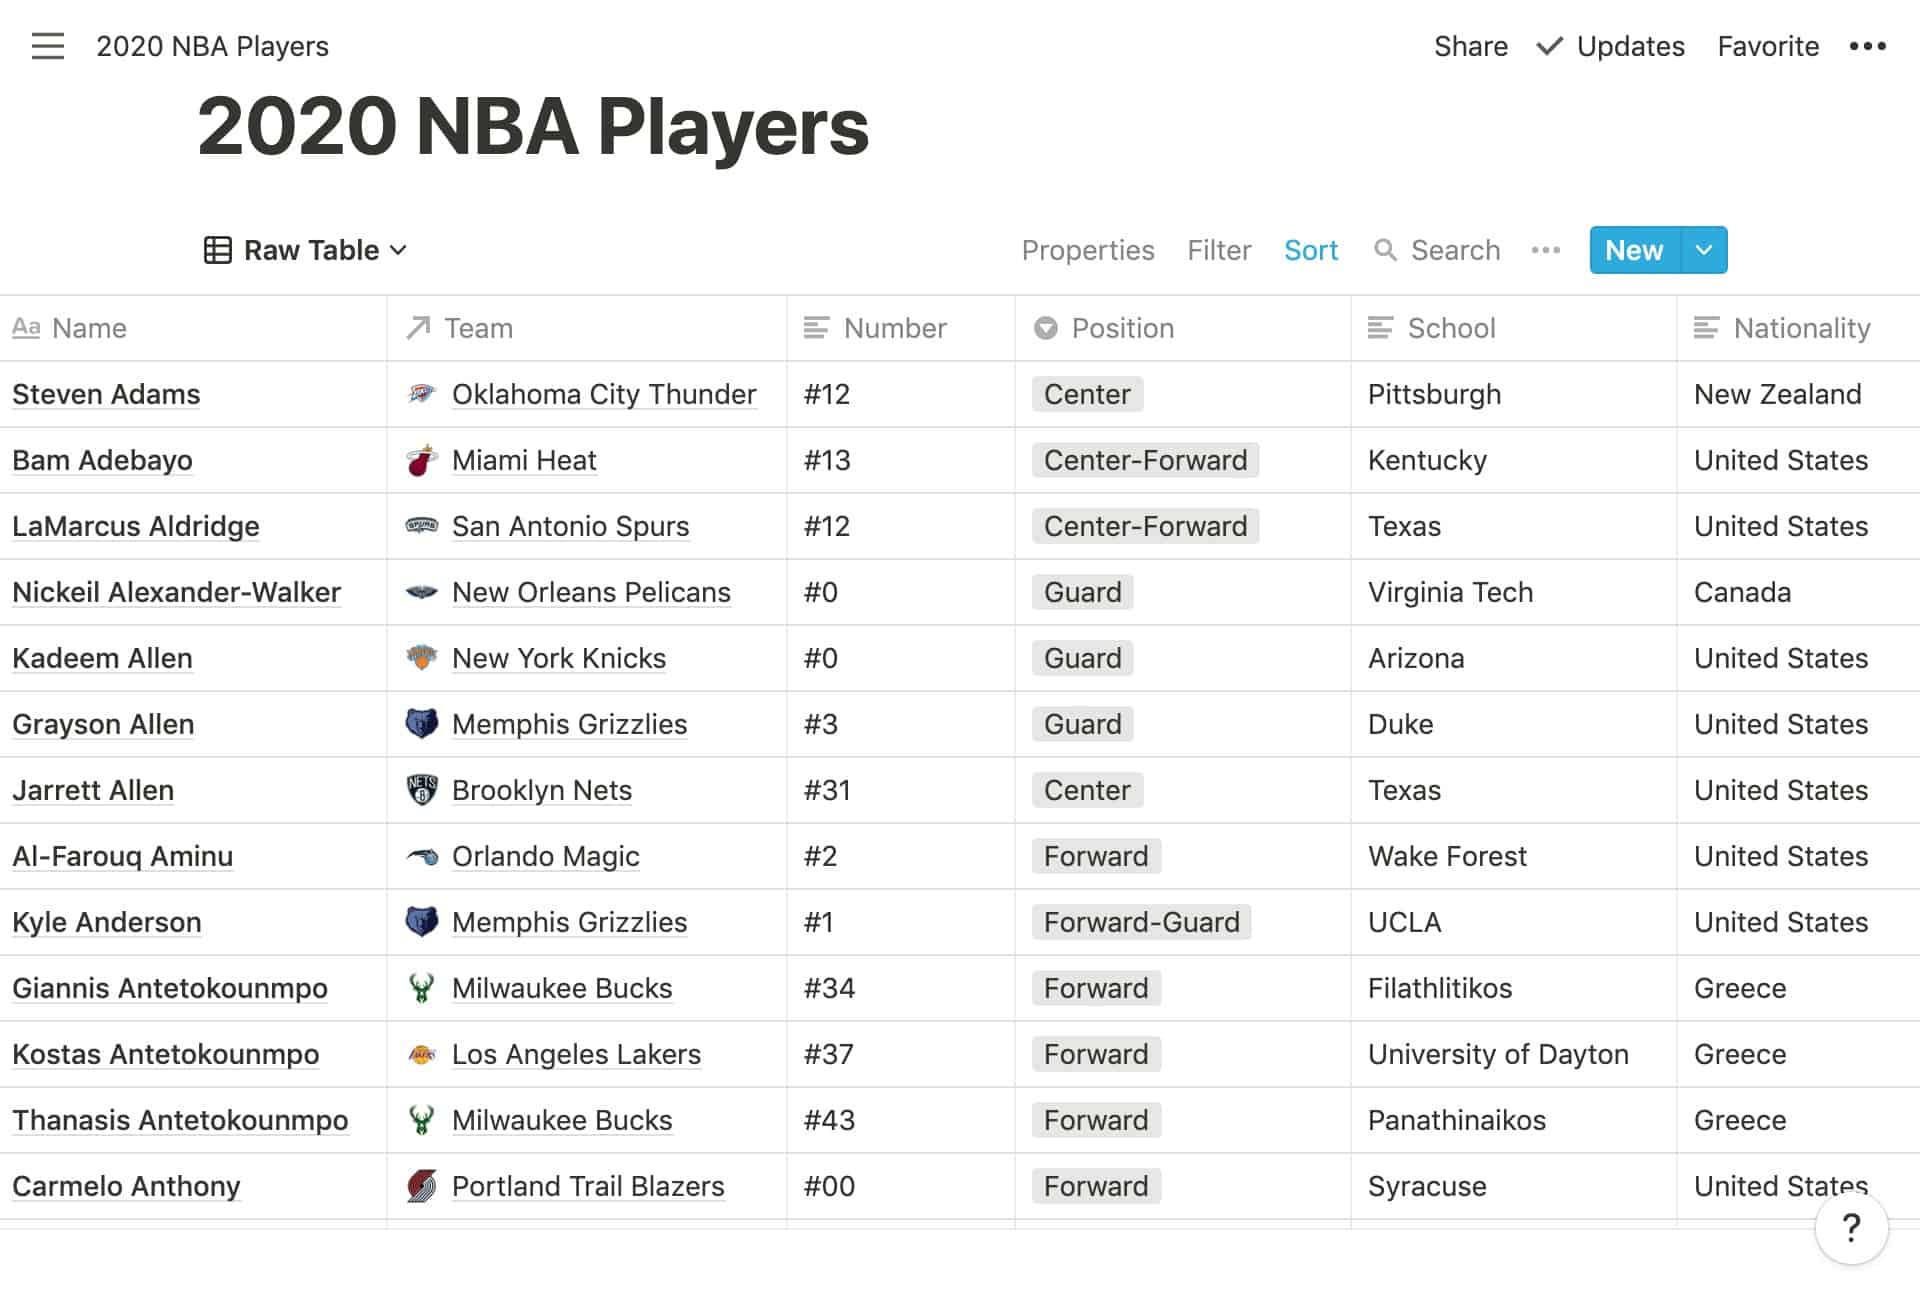 Notion Database: NBA Players